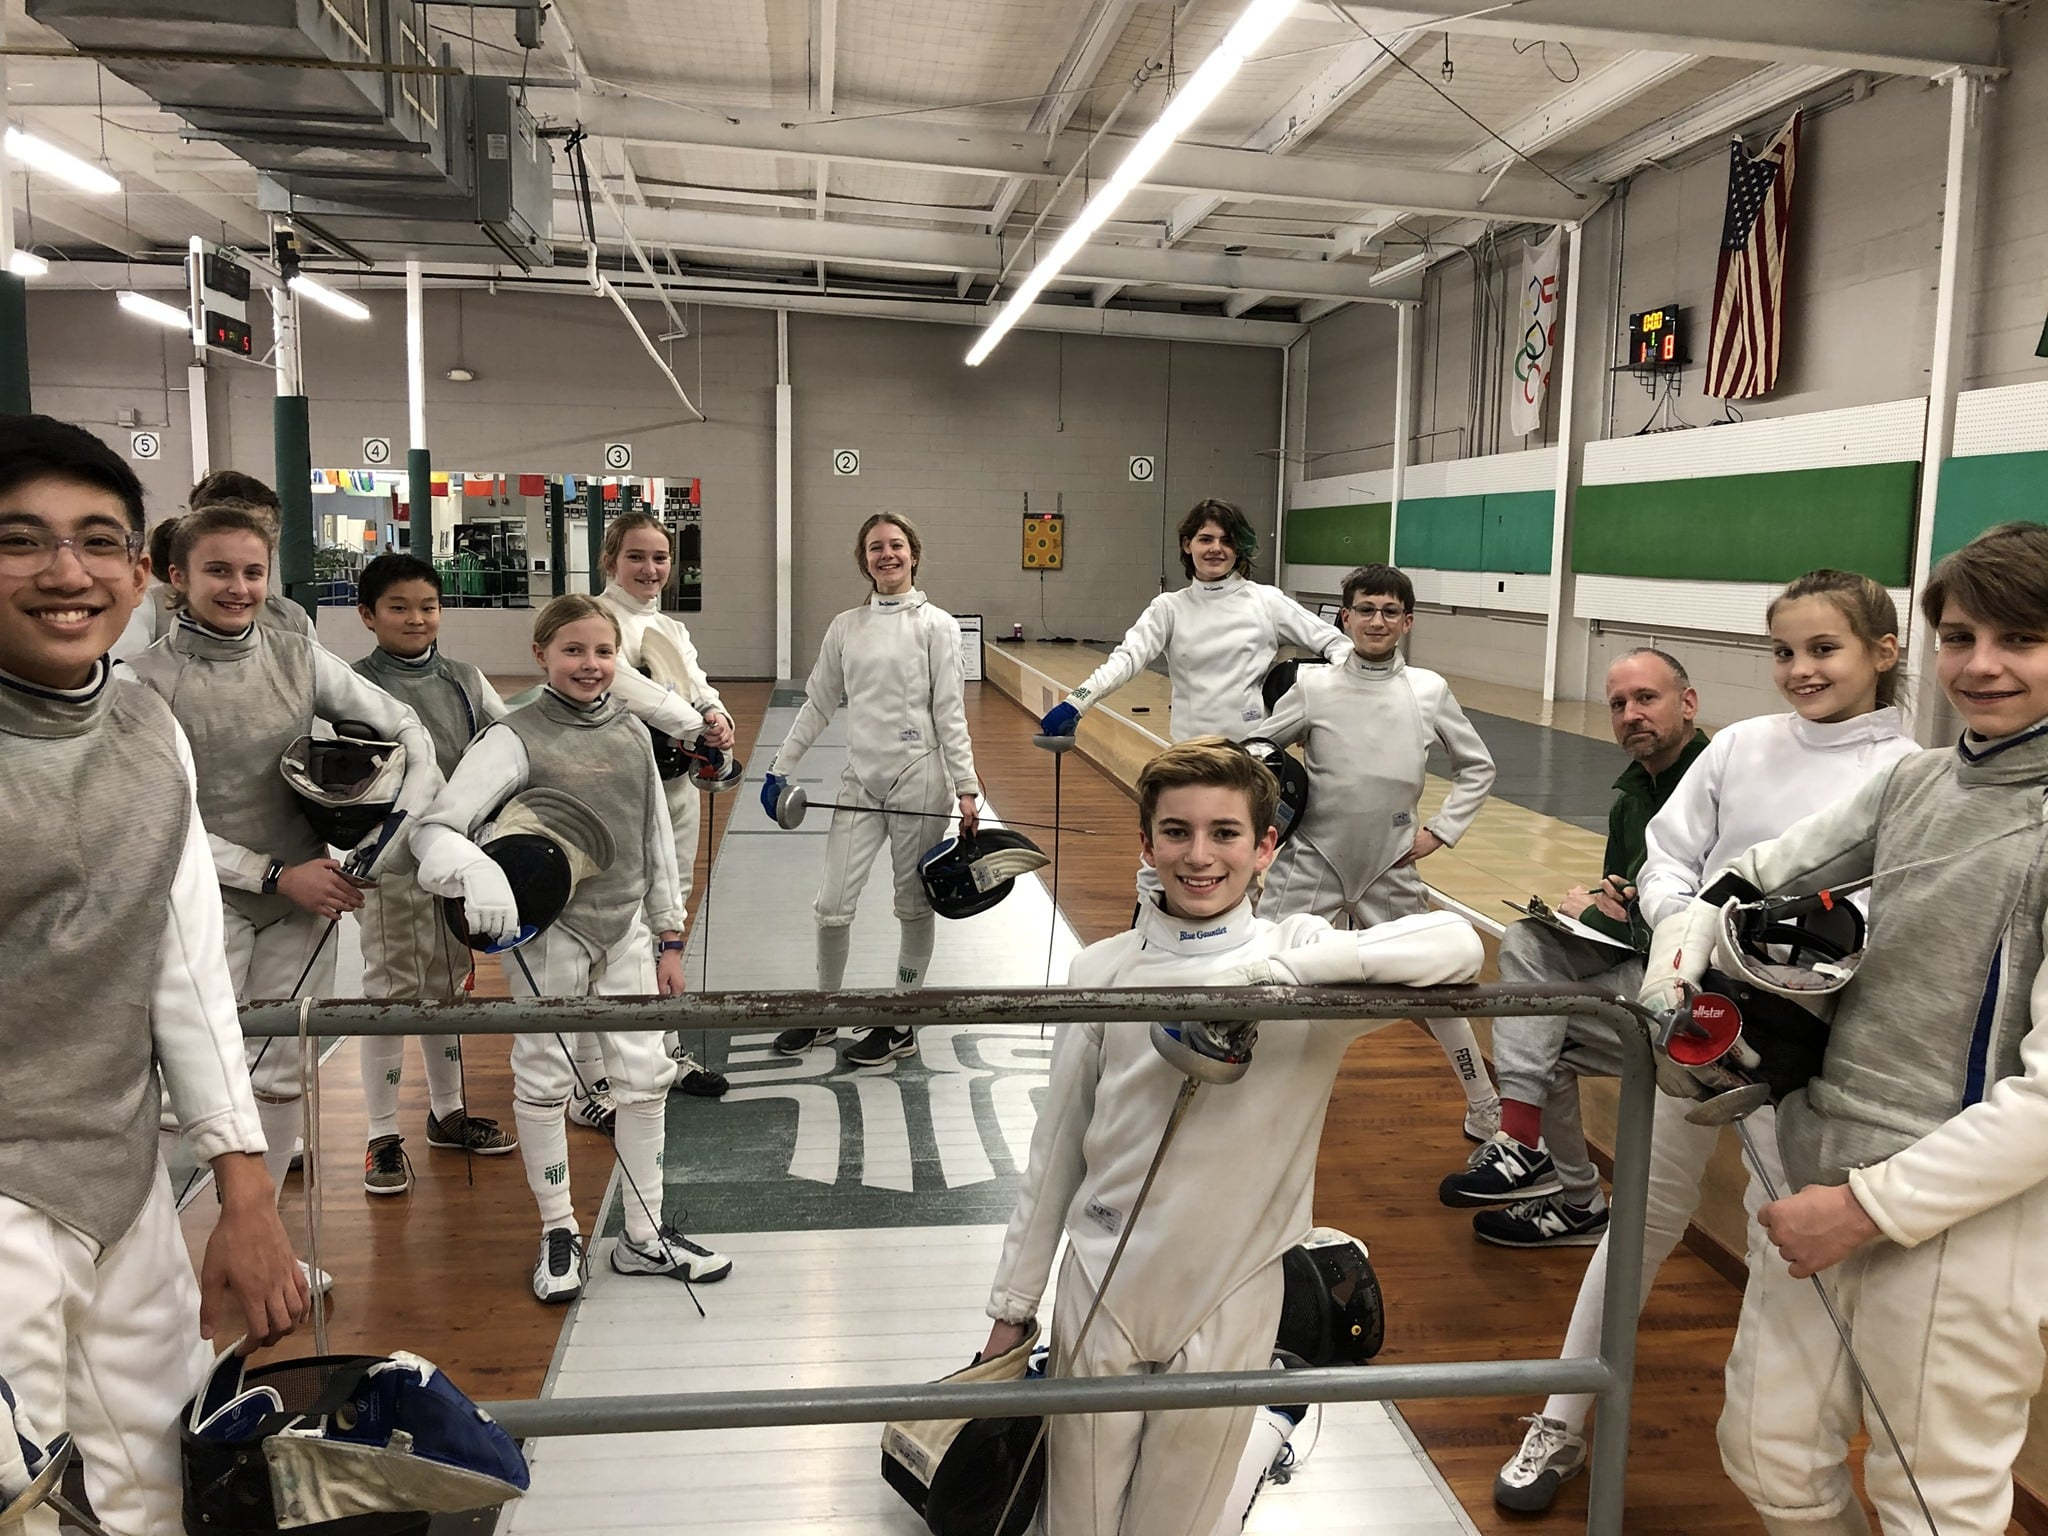 Rhode Island RI Fencing sports for girls and women